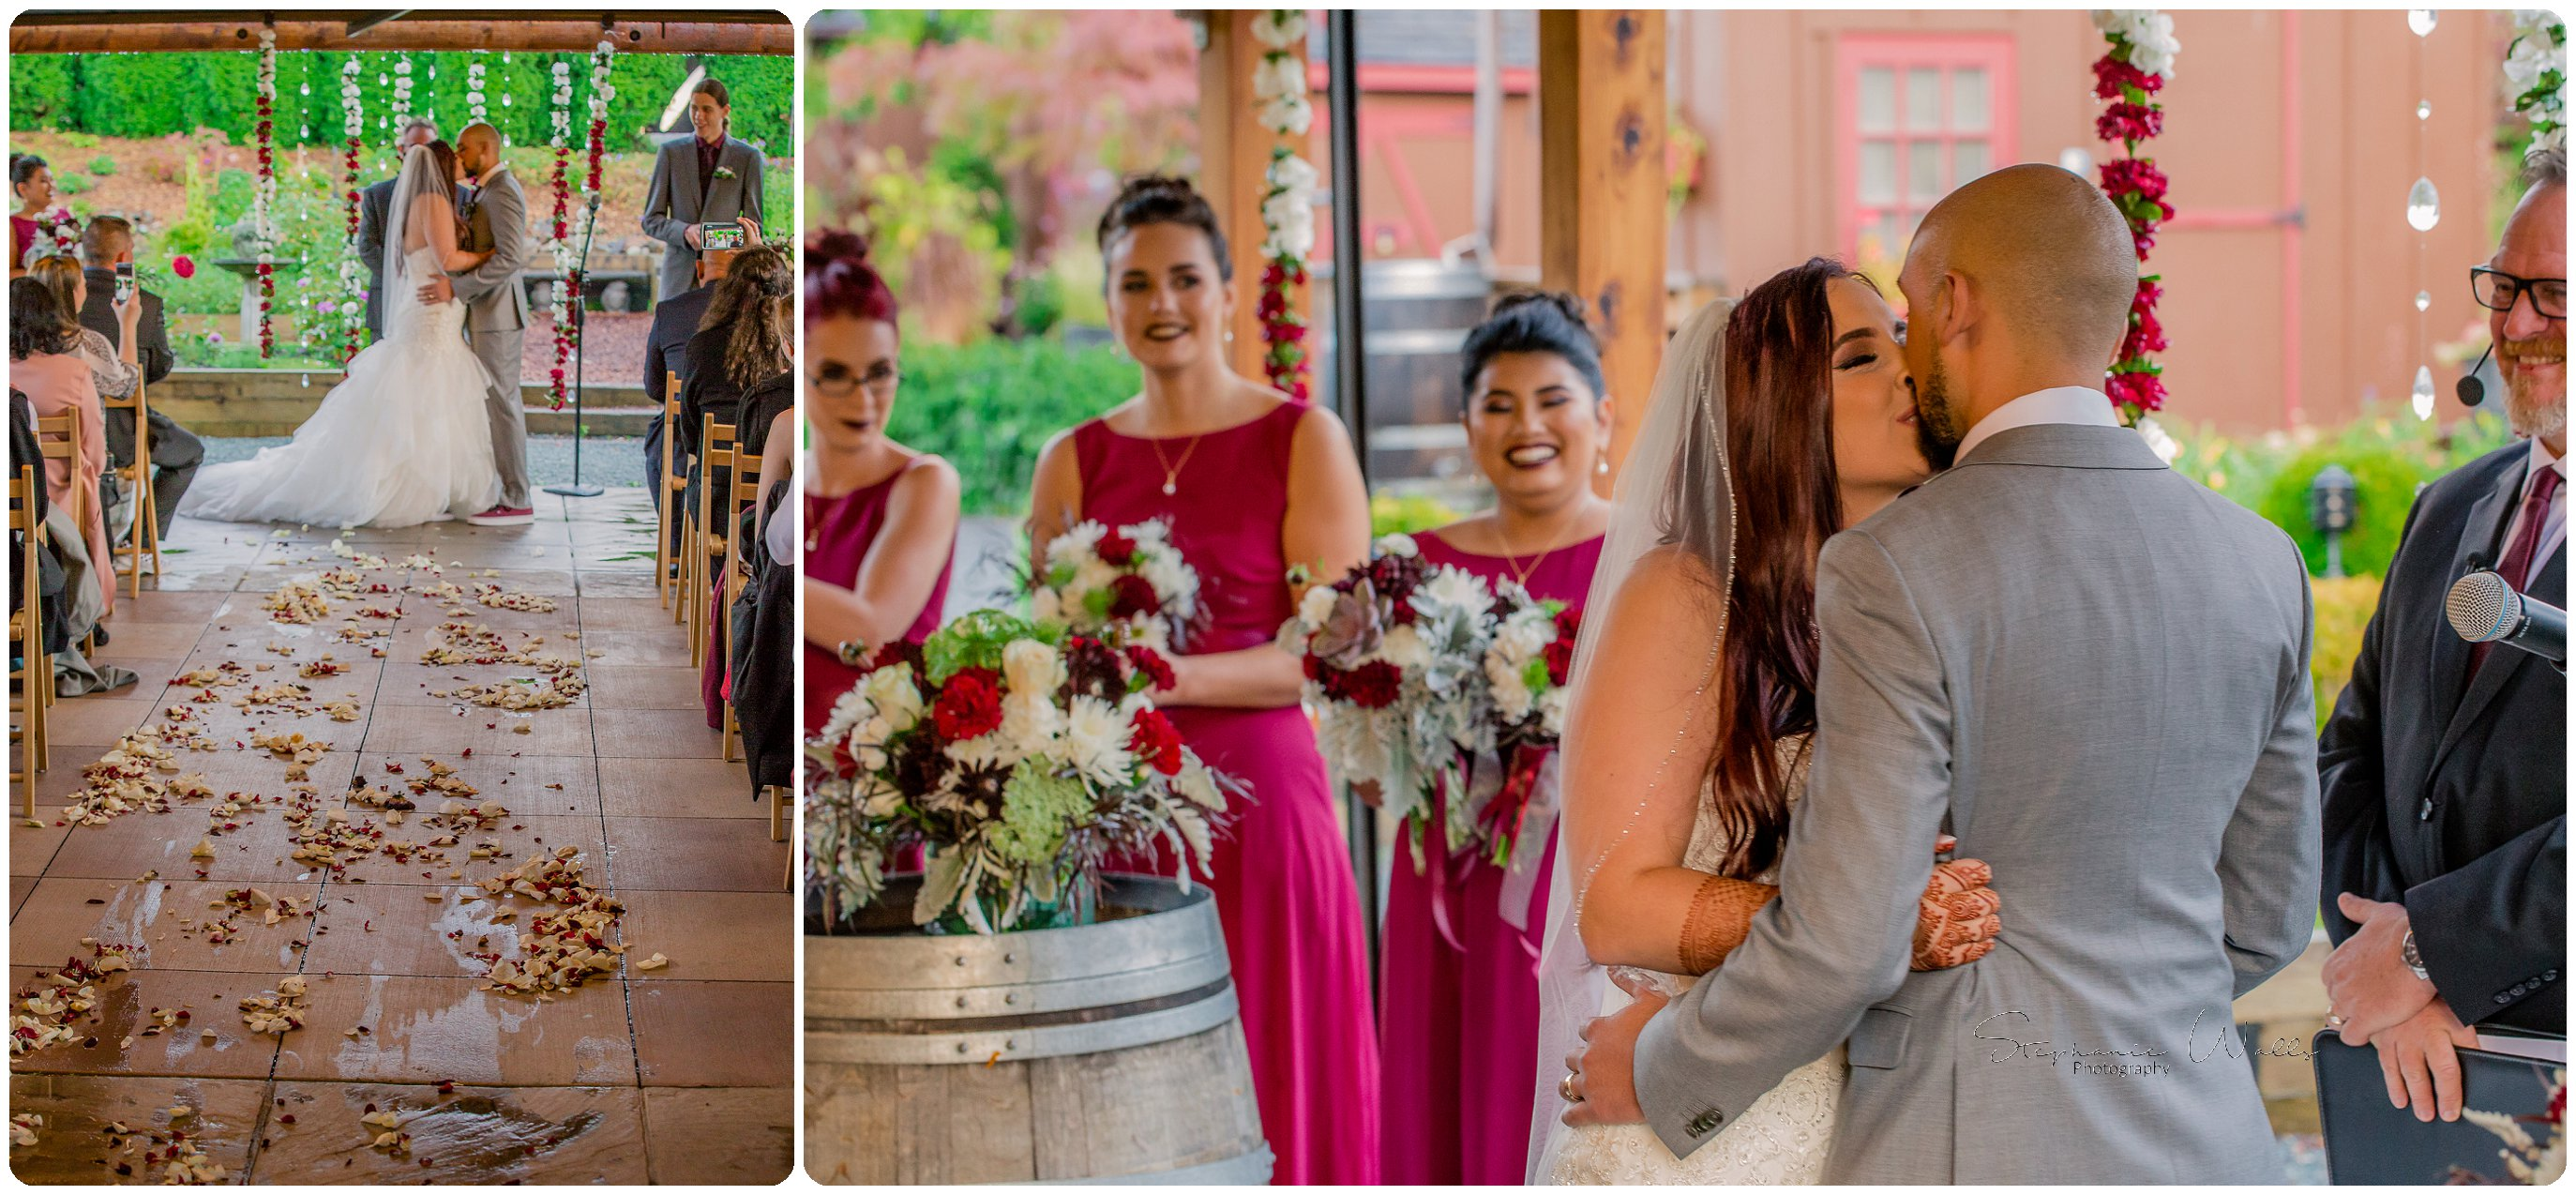 1st Look Ceremony 274 Megan & Mo's Day 2   Willow Lodge Wedding   Woodinville, Wa Wedding Photographer